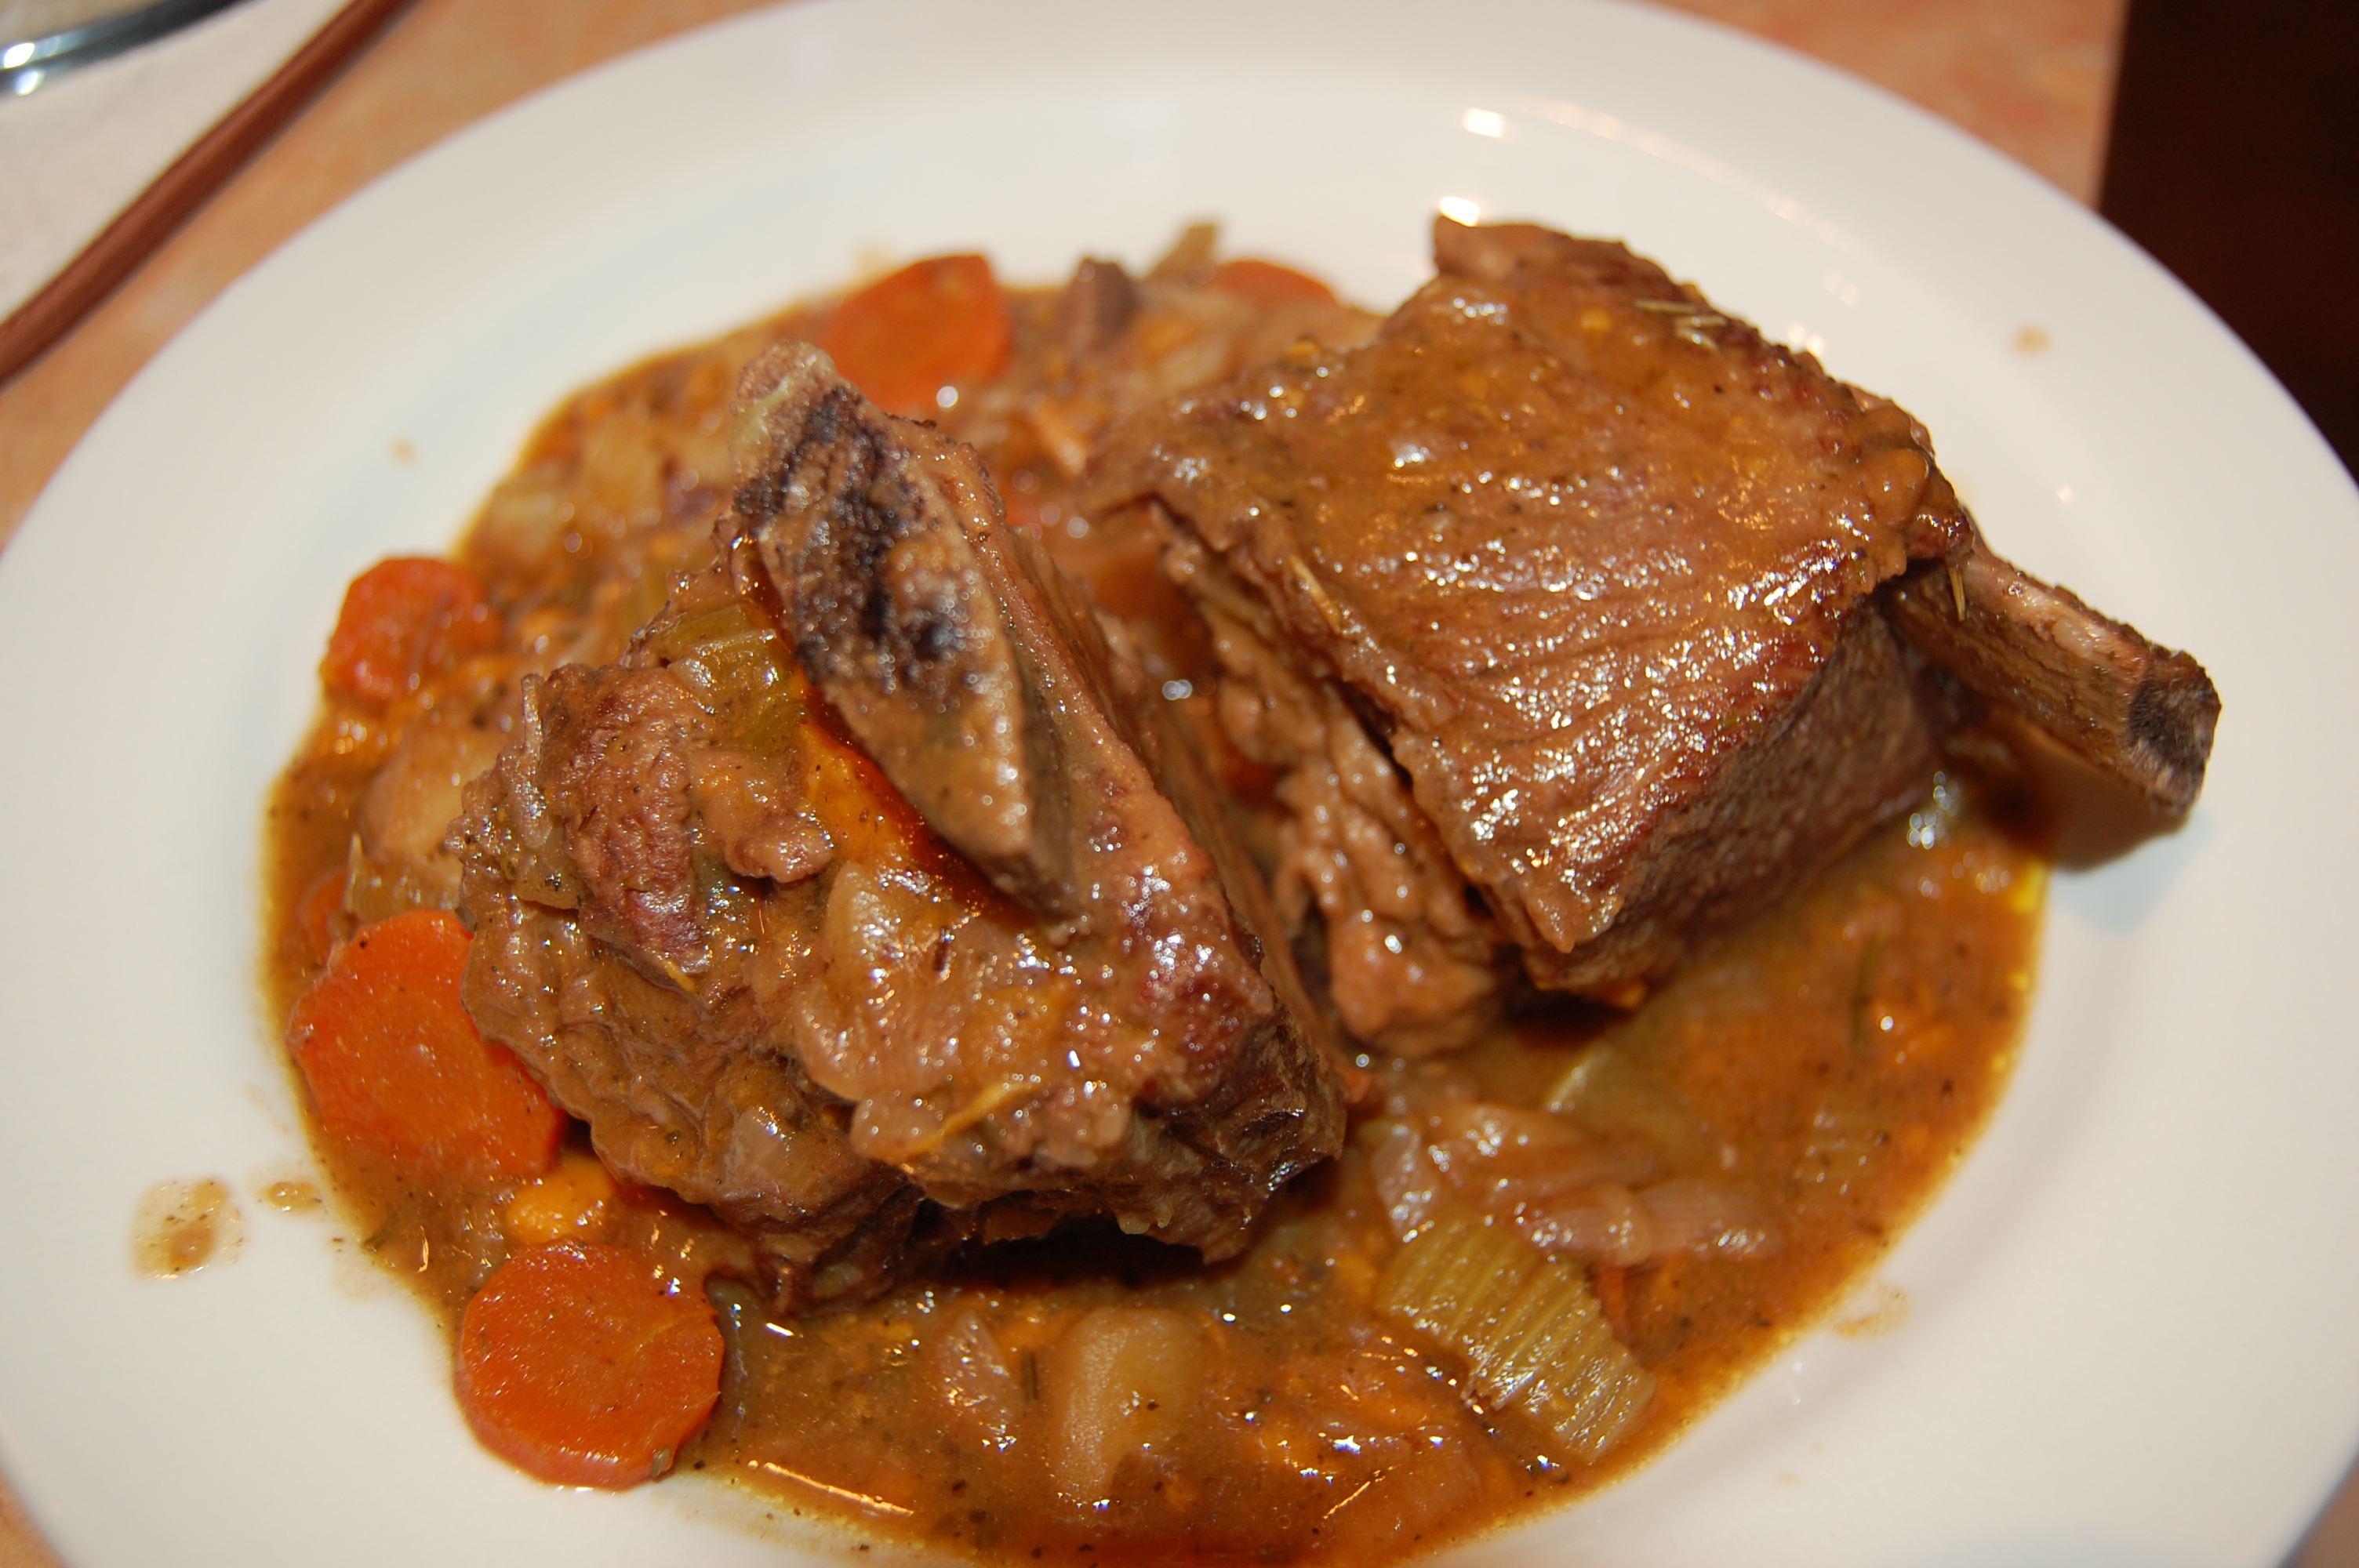 luscious oven braised short ribs recipe d artagnan braised short ribs ...